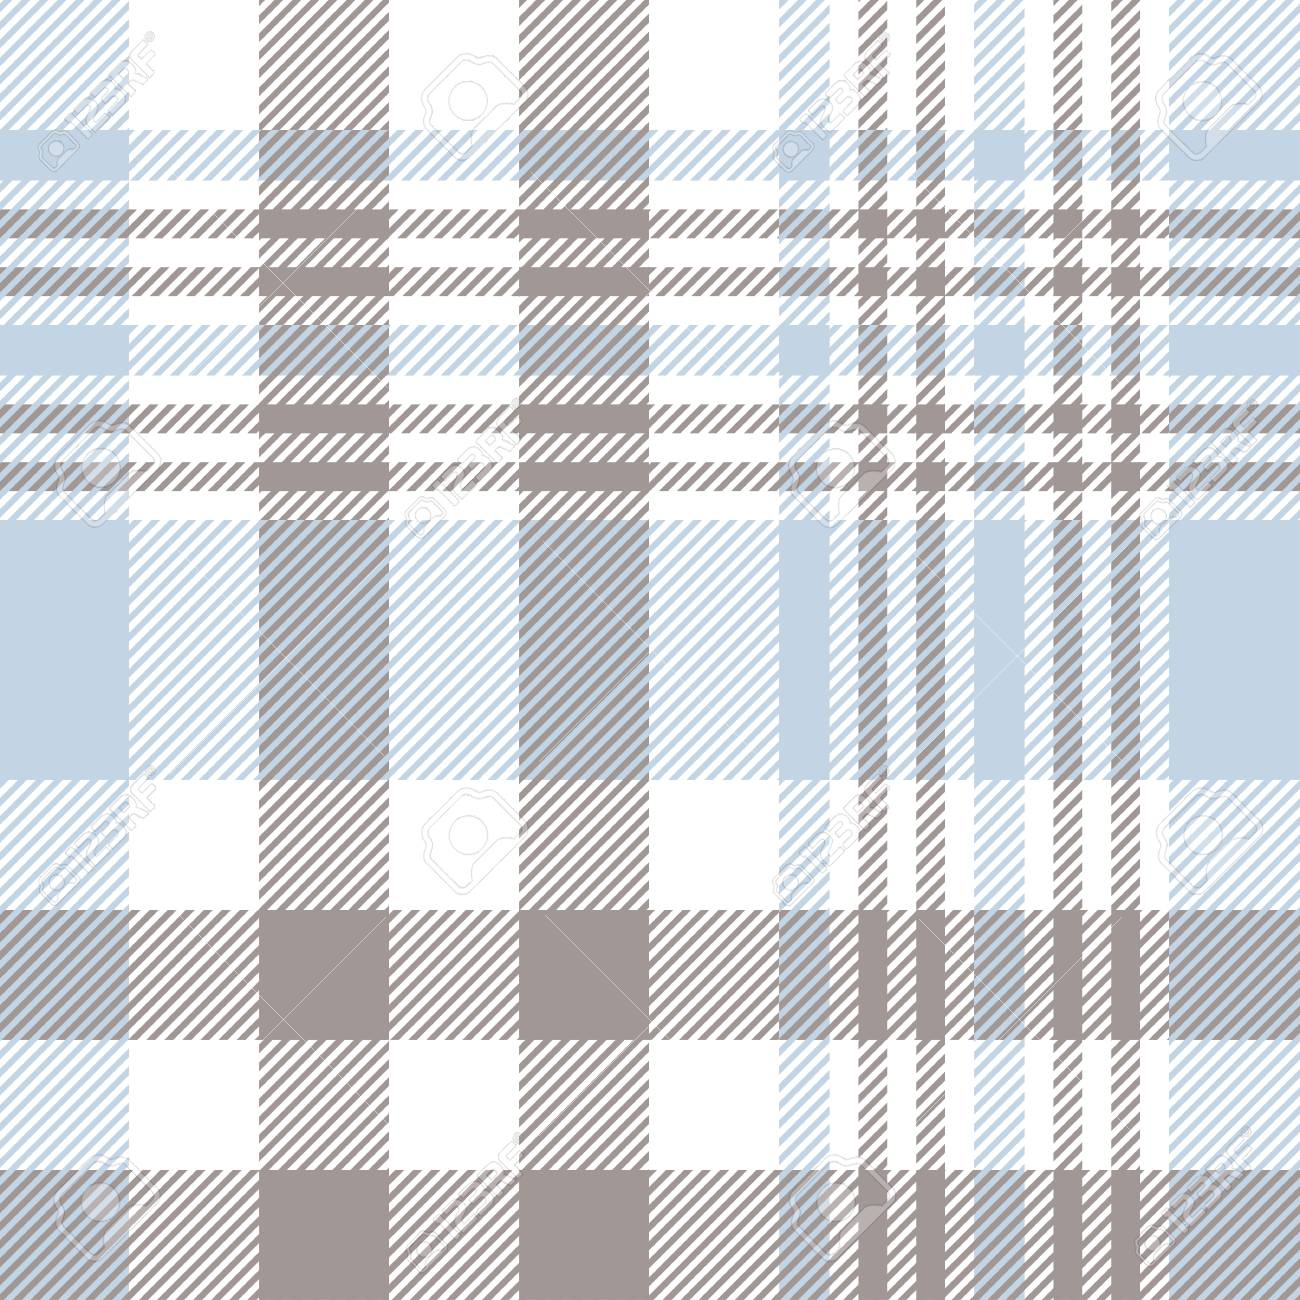 Plaid Taupe Plaid Pattern In Pale Blue Taupe Brown And White